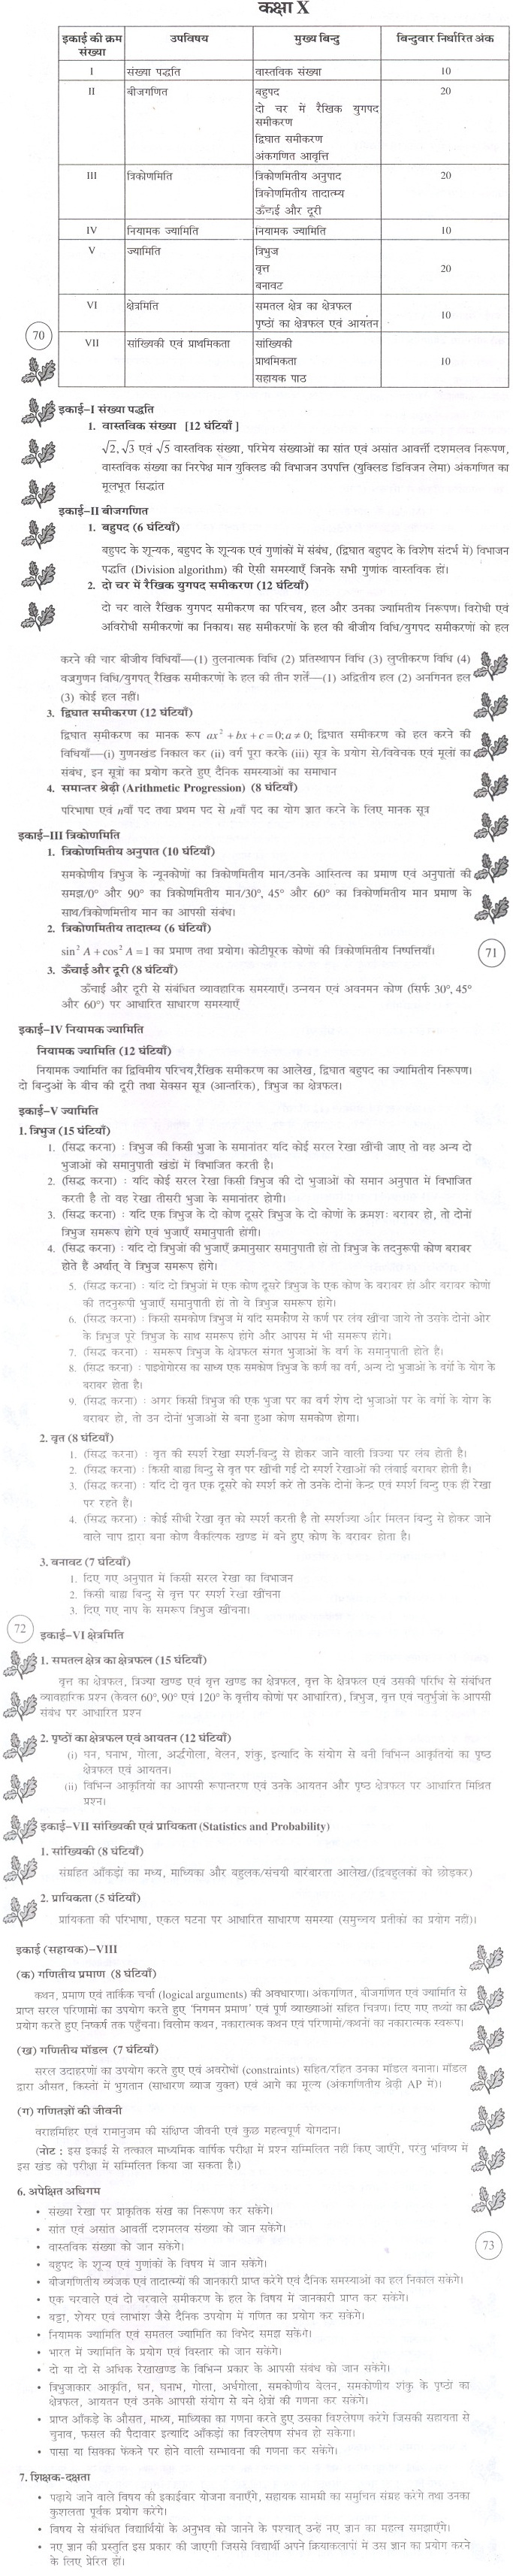 Bihar Board Secondary Syllabus - Maths